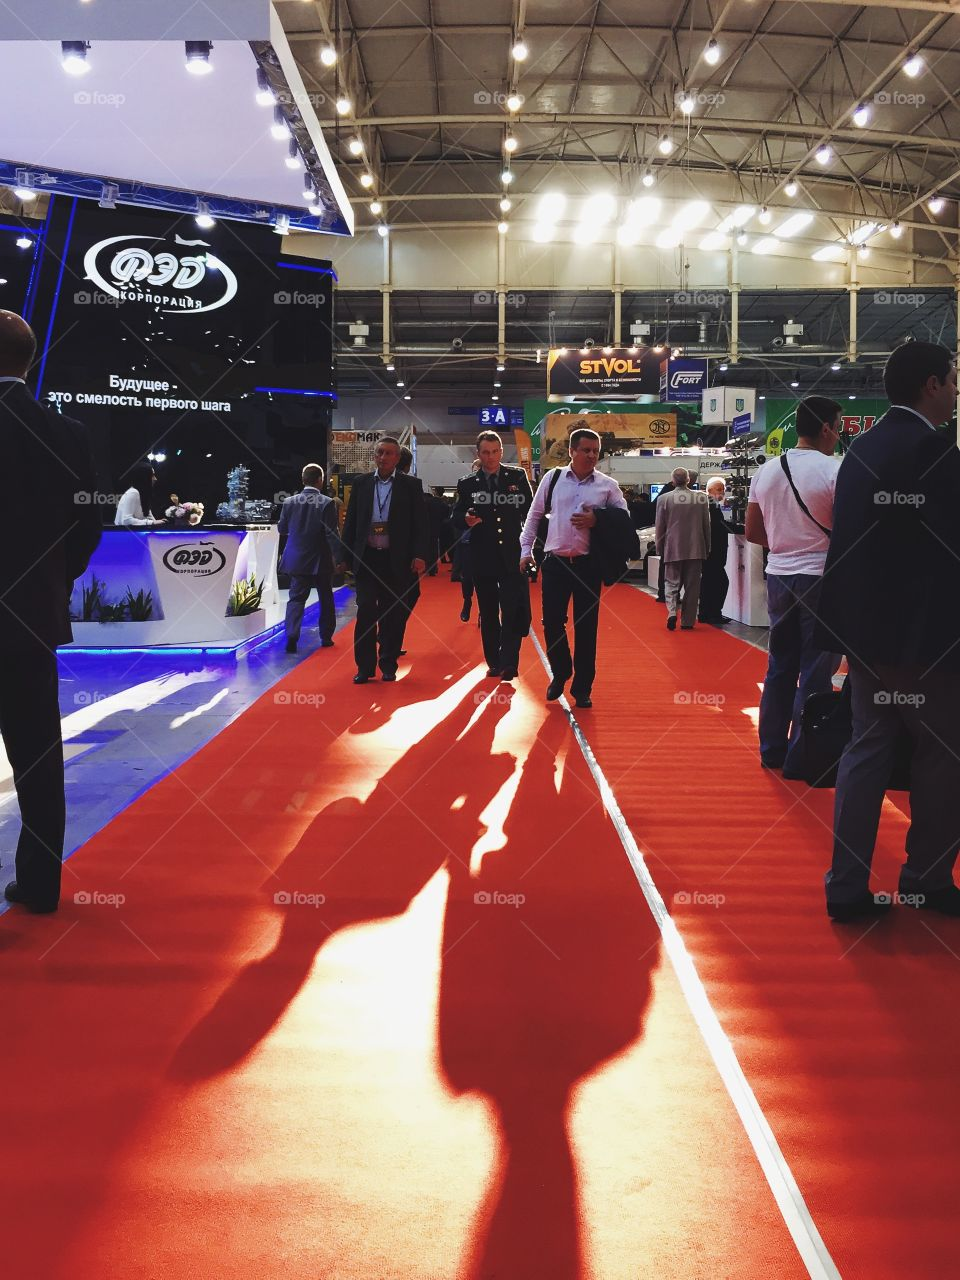 View of a business exhibition